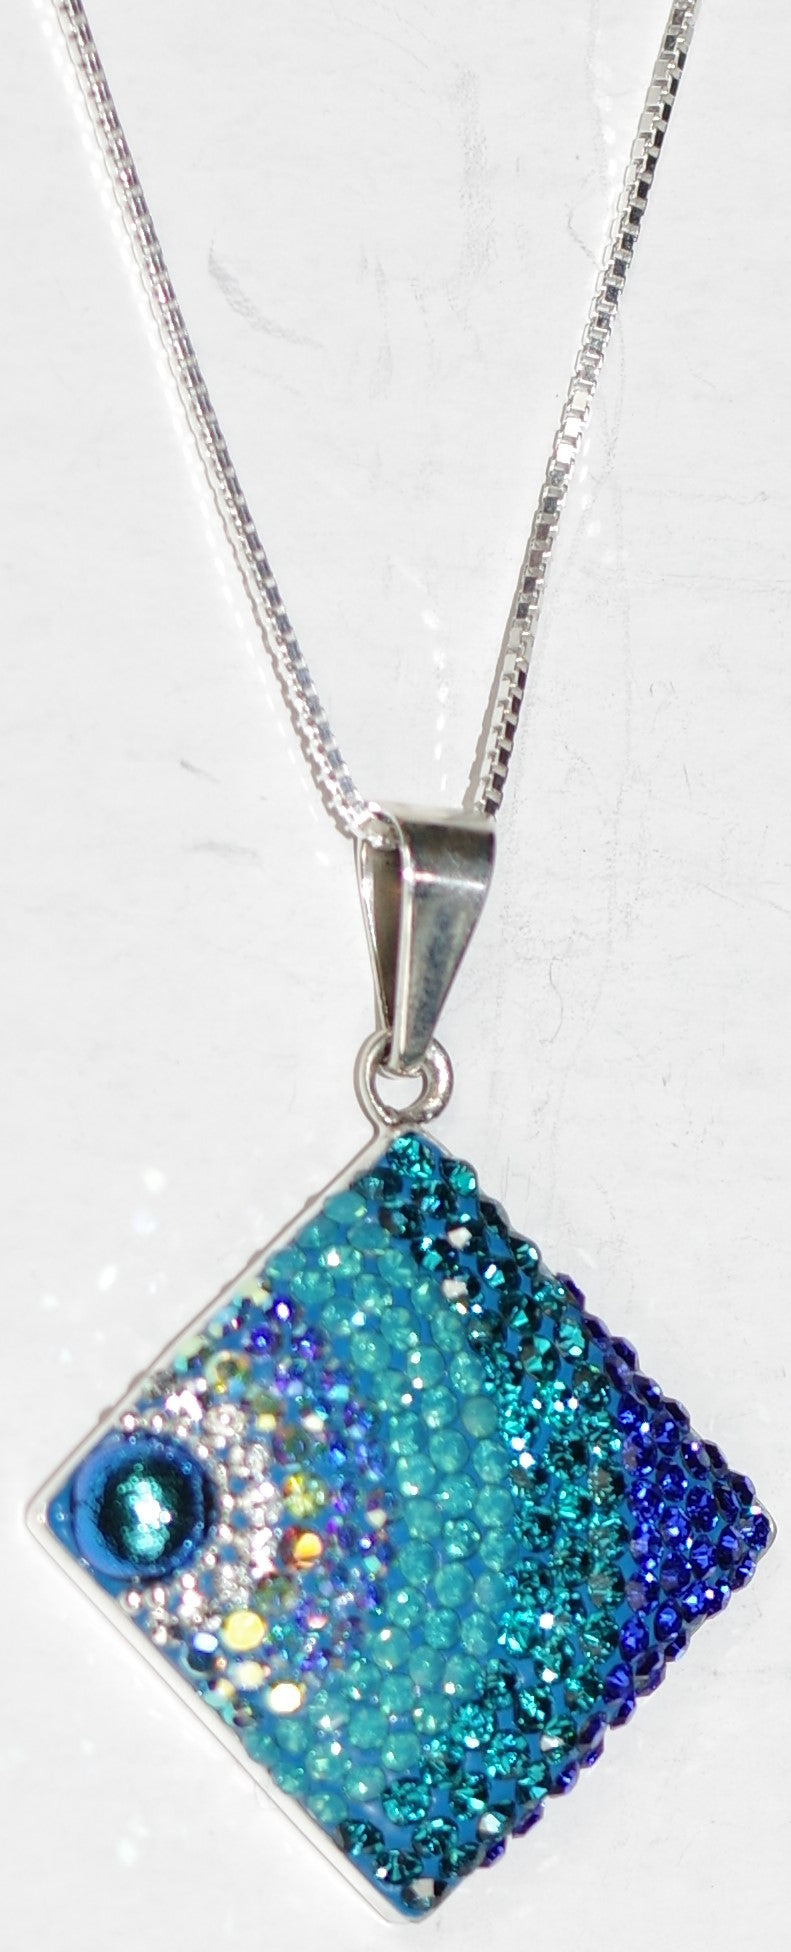 "MOSAICO PENDANT JUMBO SQUARE-D: multi color Austrian crystals in 1"" solid silver pendant, 18-20 inch adjustable silver chain"